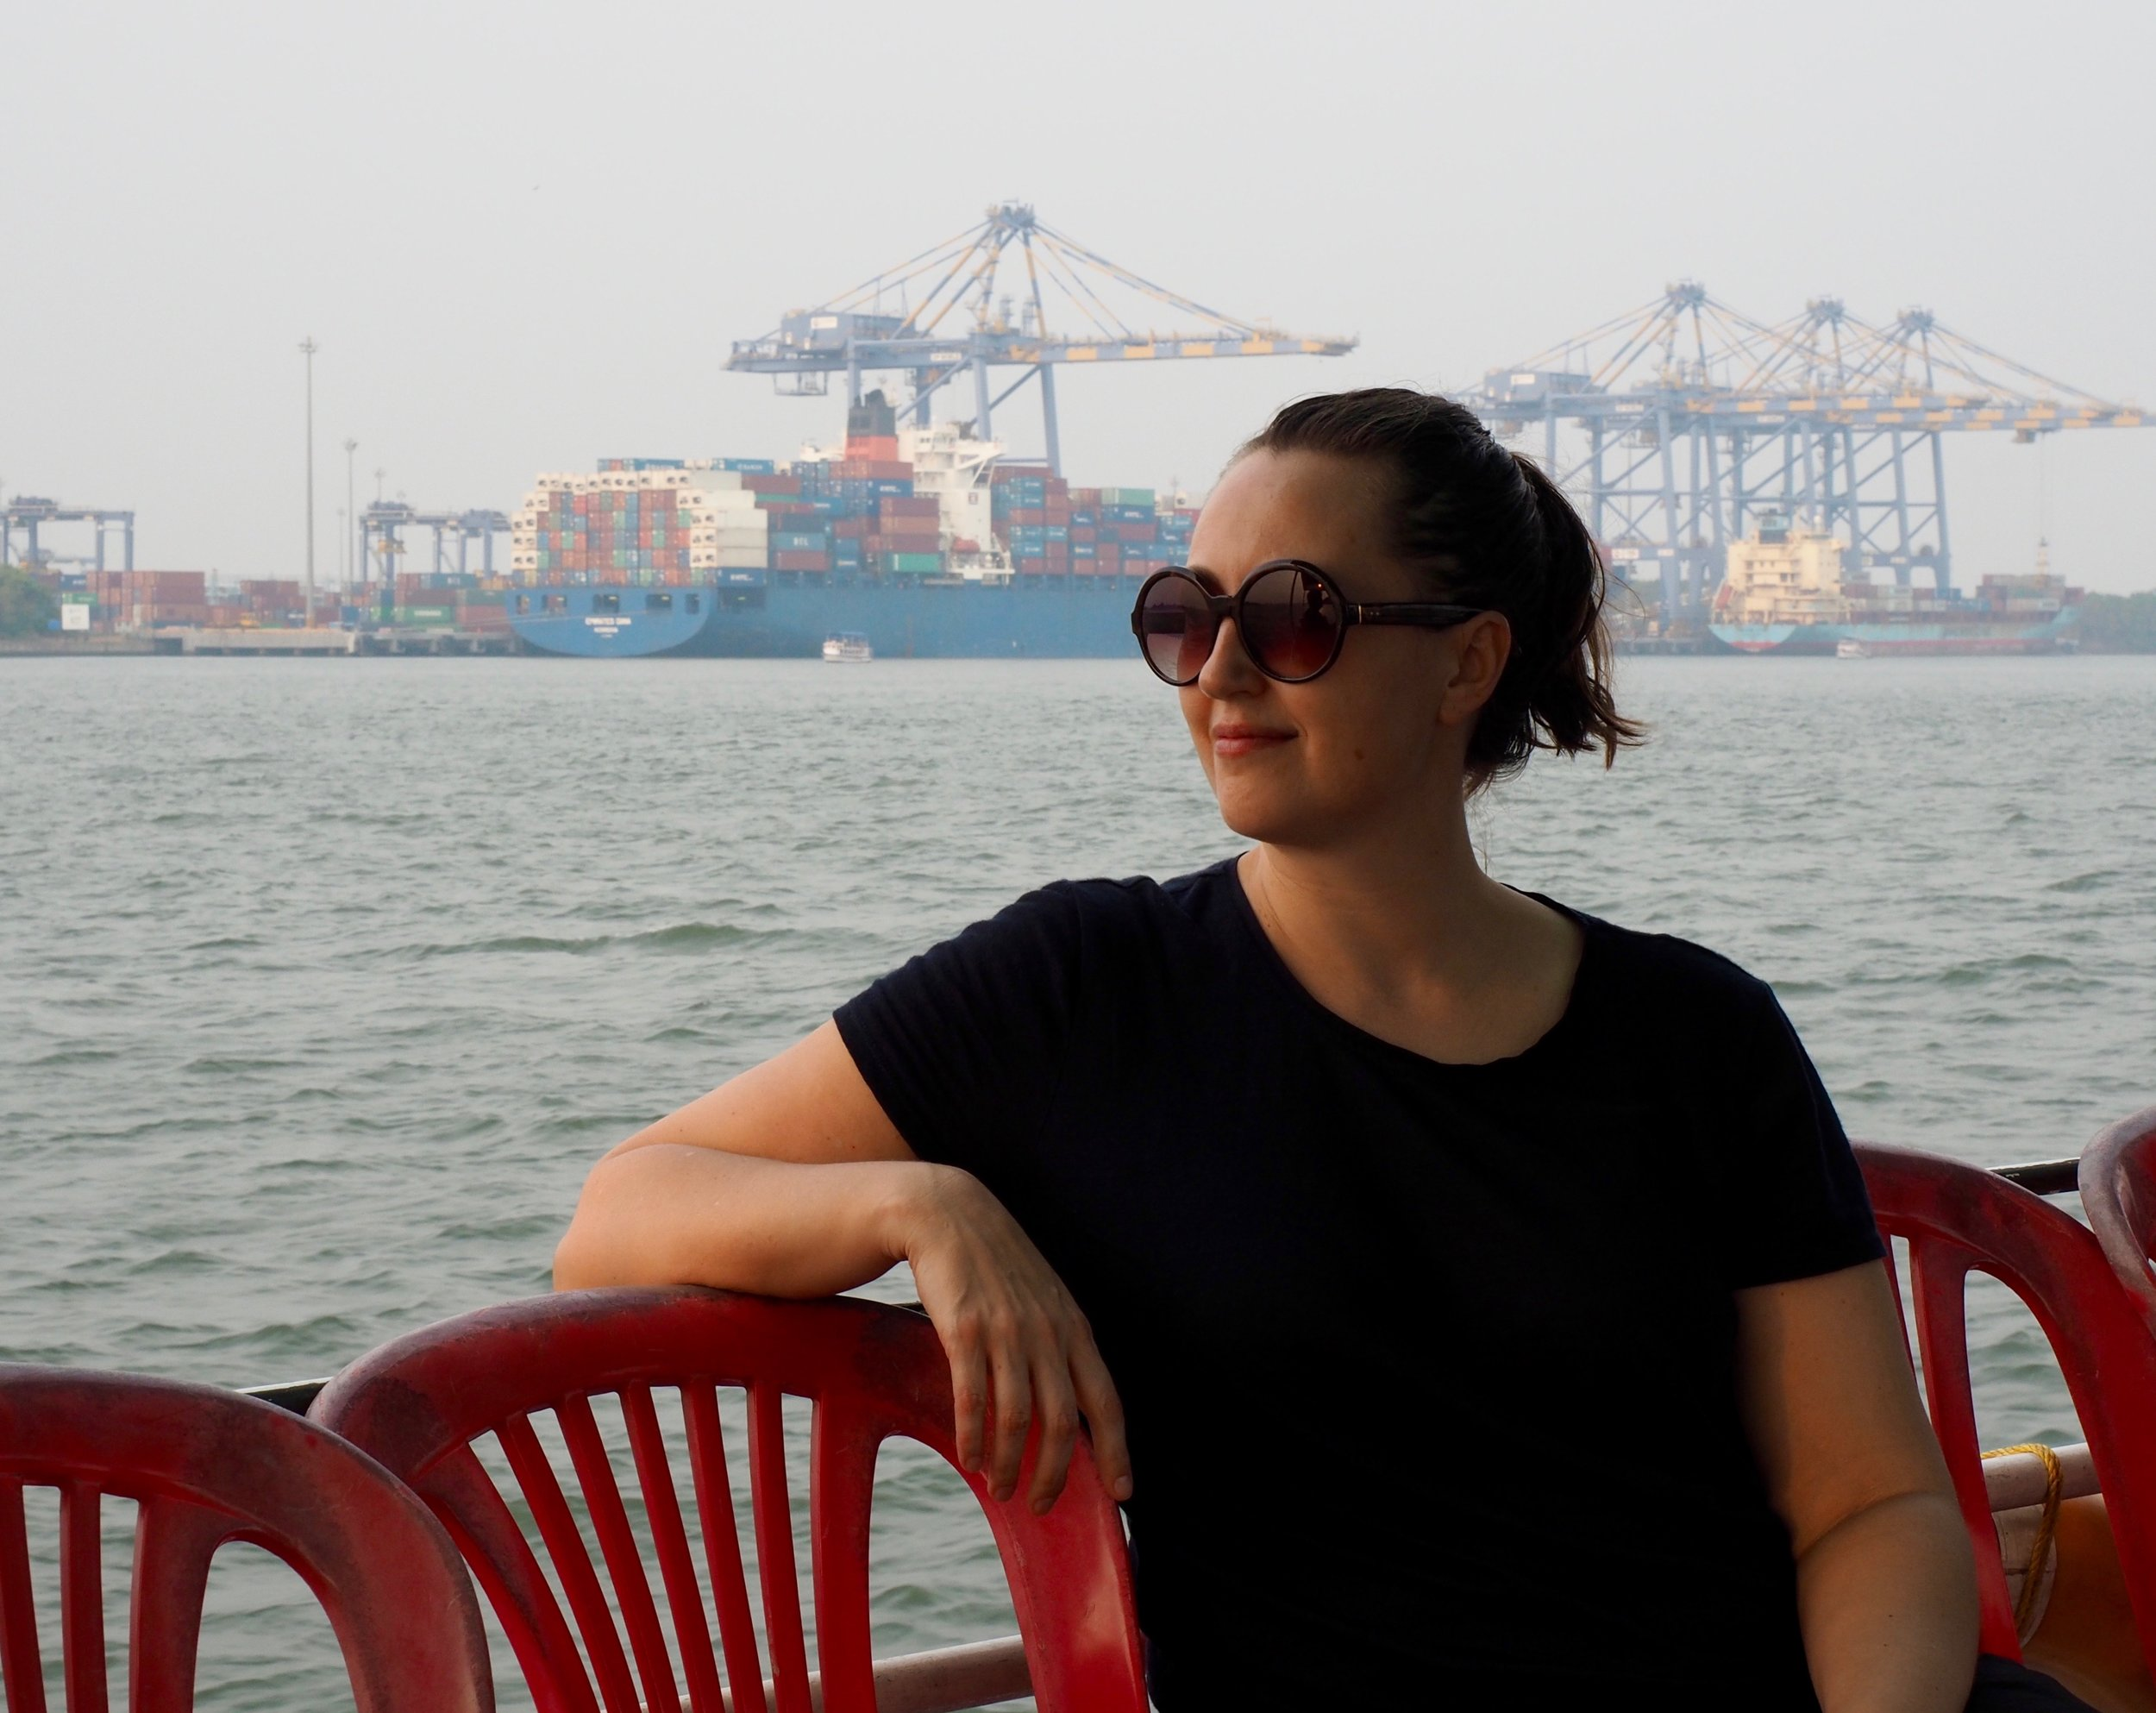 Here I am sitting on a tourist boat in a major shipping port in Kochi, Kerala. I'm sporting a comfortable ponytail that requires virtually no skill and very little time to execute - perfect for me!